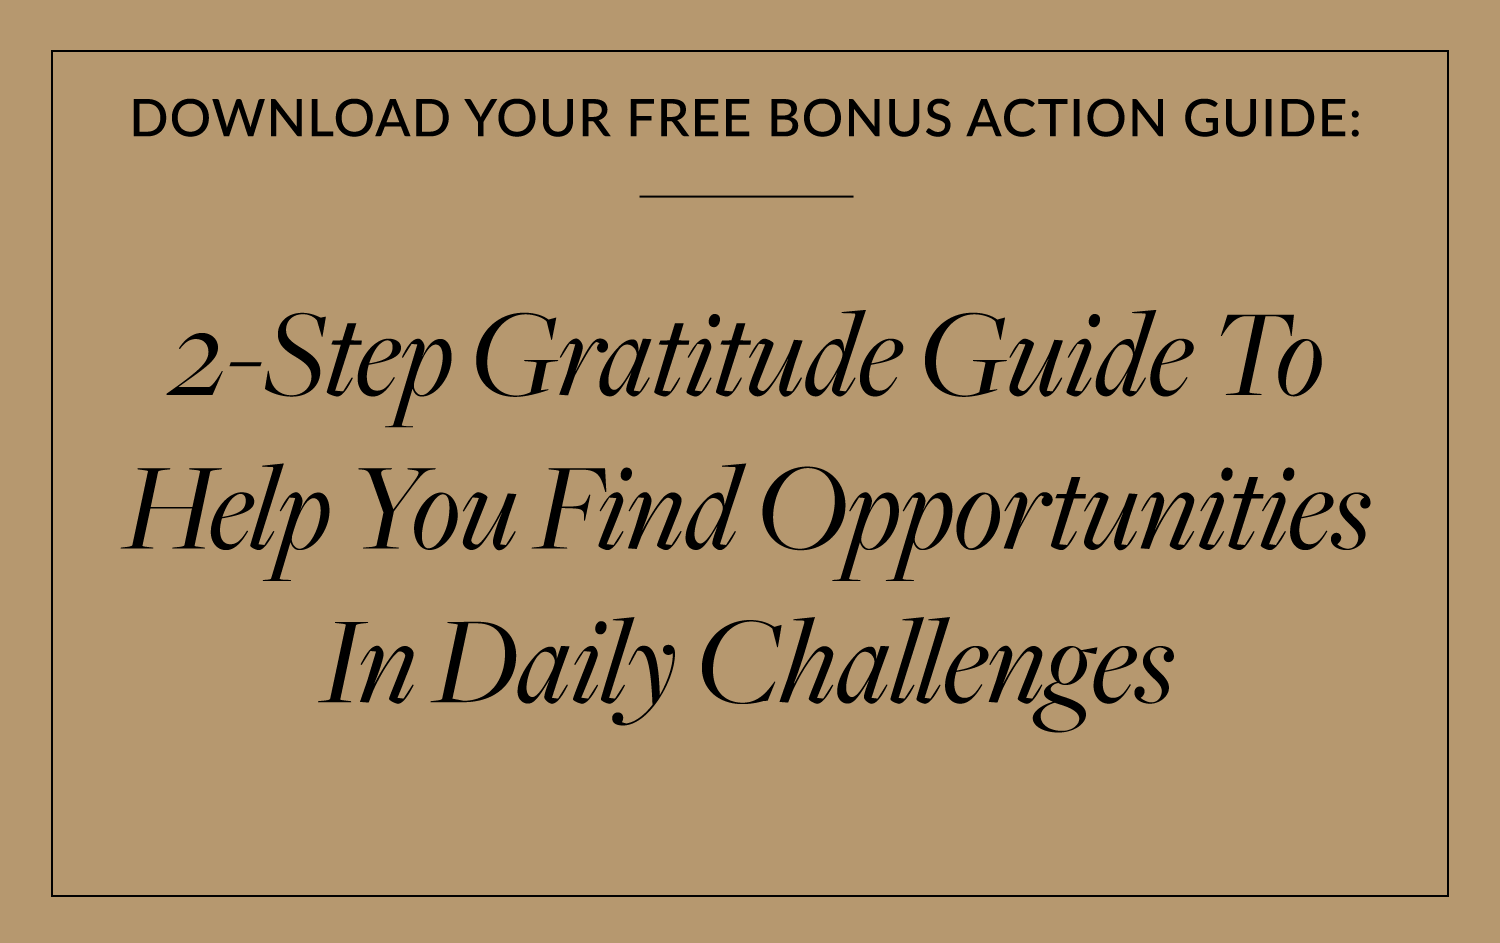 2-Step Gratitude Guide To Help You Find Opportunities In Daily Challenges